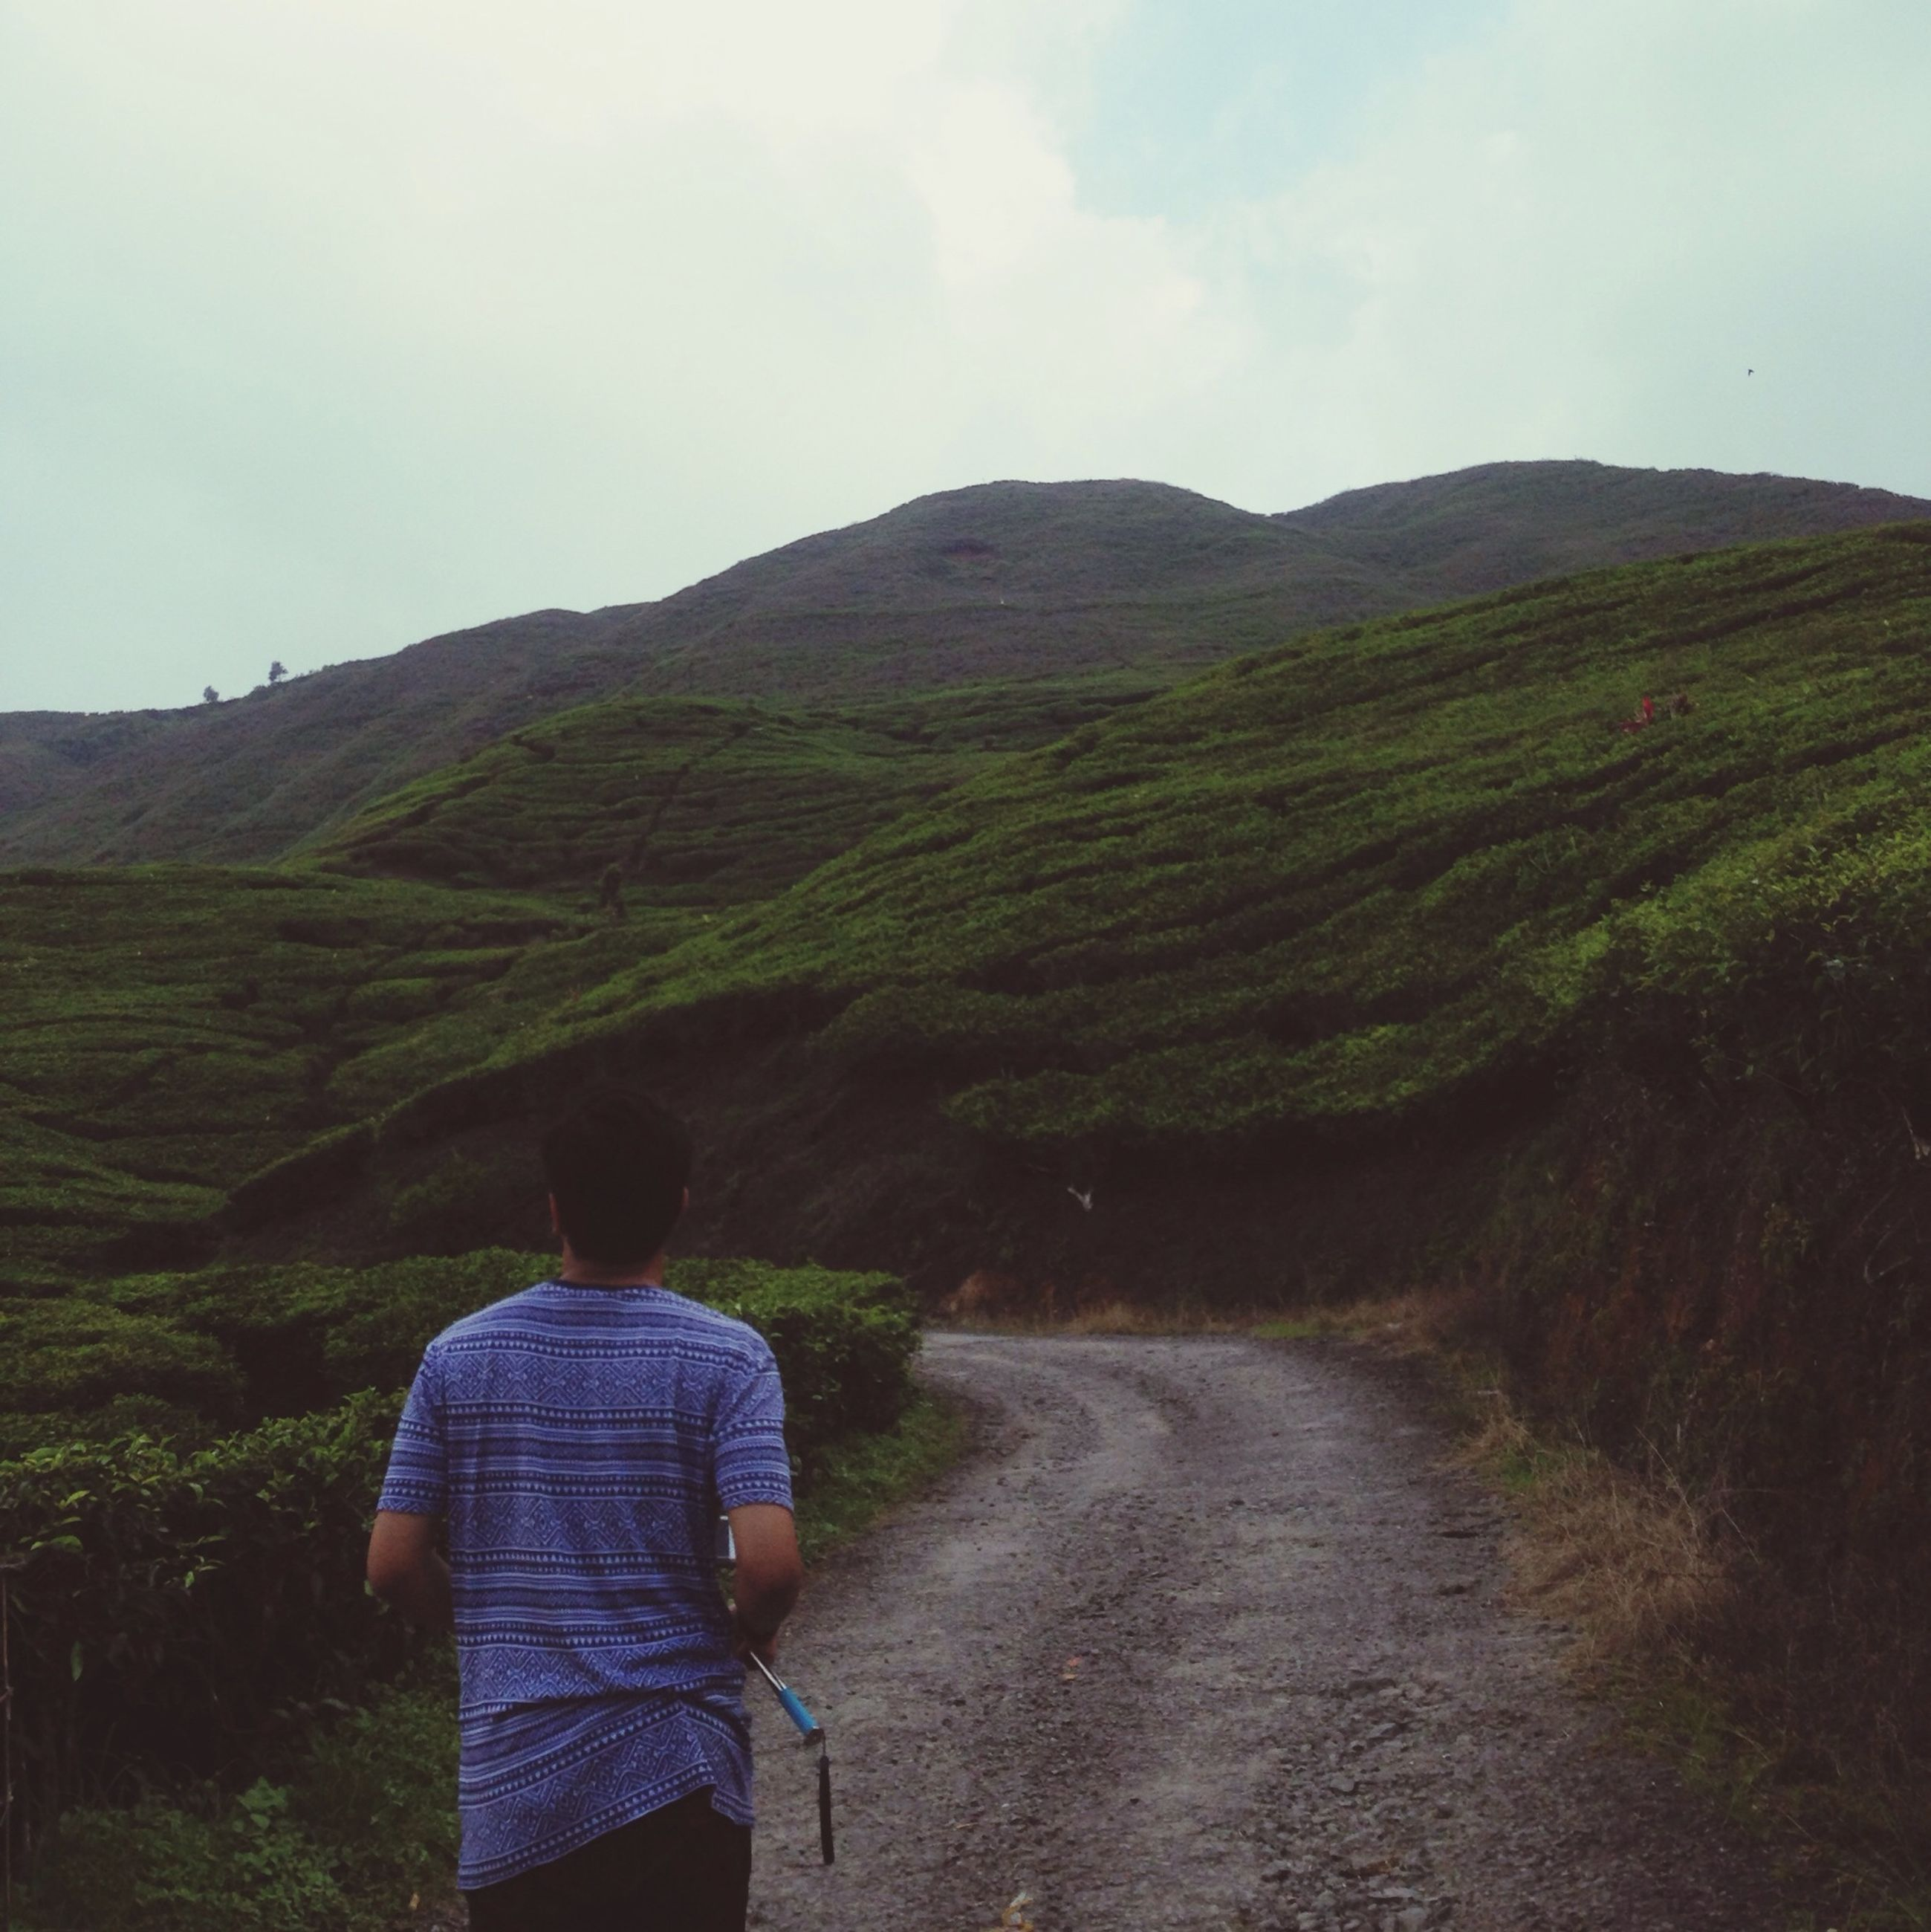 lifestyles, mountain, leisure activity, rear view, landscape, casual clothing, men, tranquility, sky, tranquil scene, grass, standing, nature, scenics, beauty in nature, person, hiking, walking